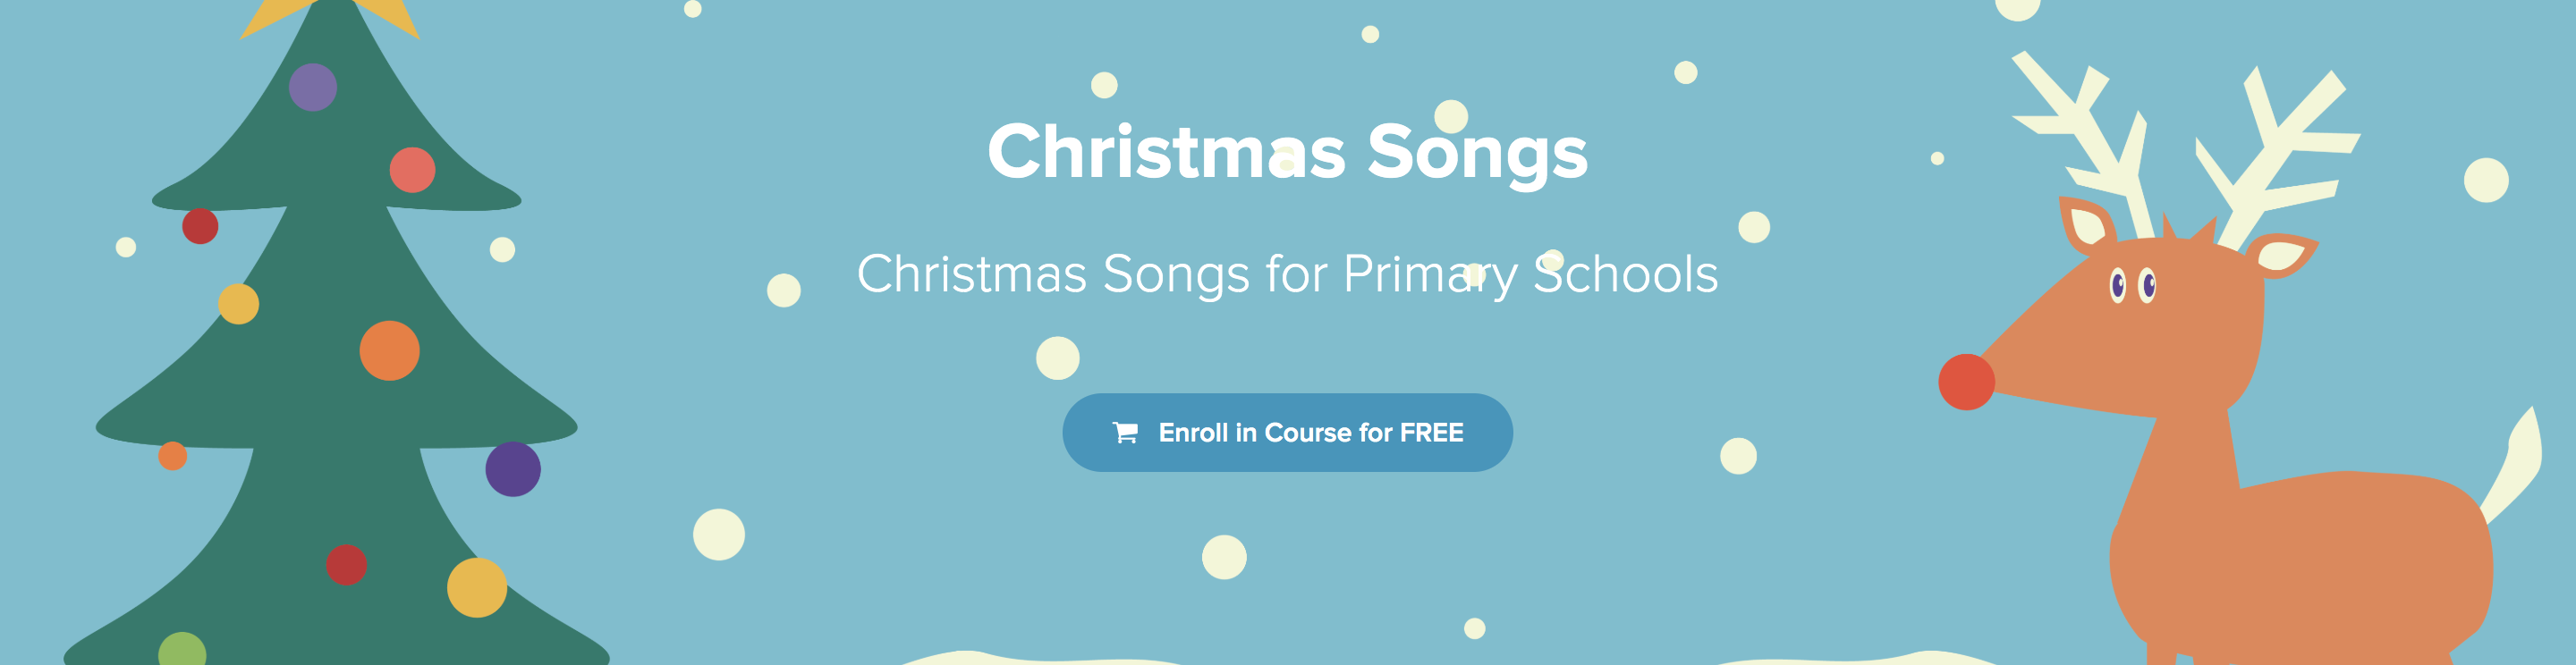 DabbledooMusic Christmas Songs Course